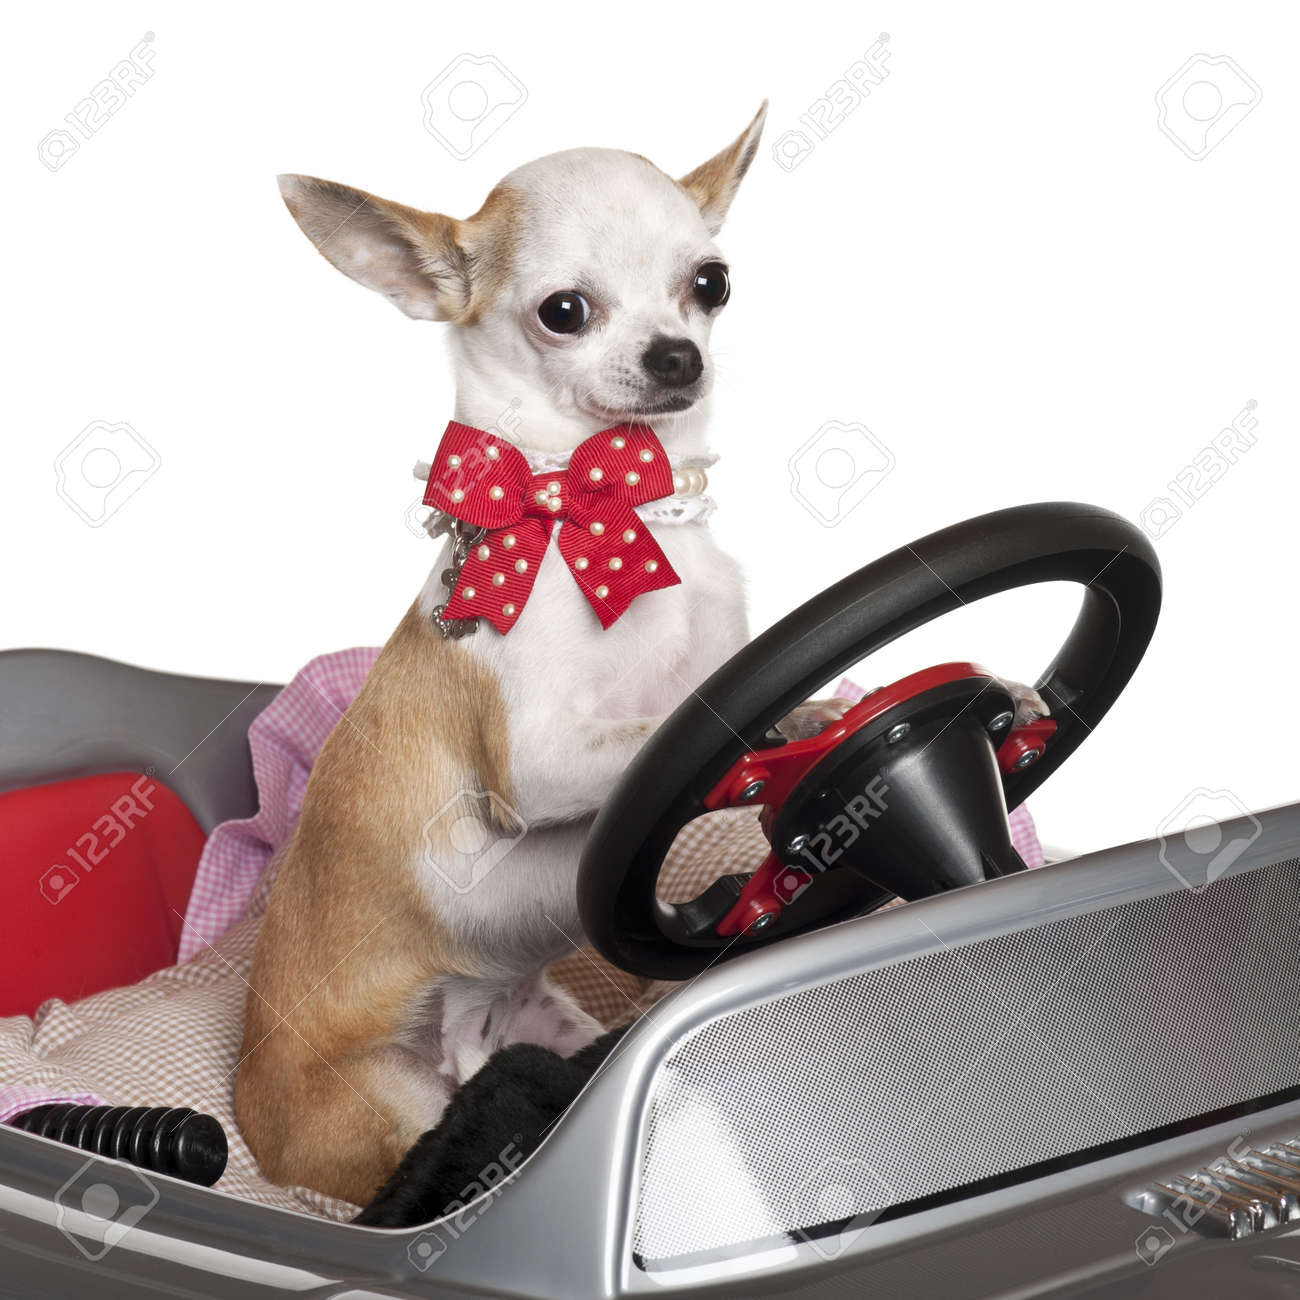 Close-up of Chihuahua puppy, 6 months old, driving convertible in front of white background Stock Photo - 11188825